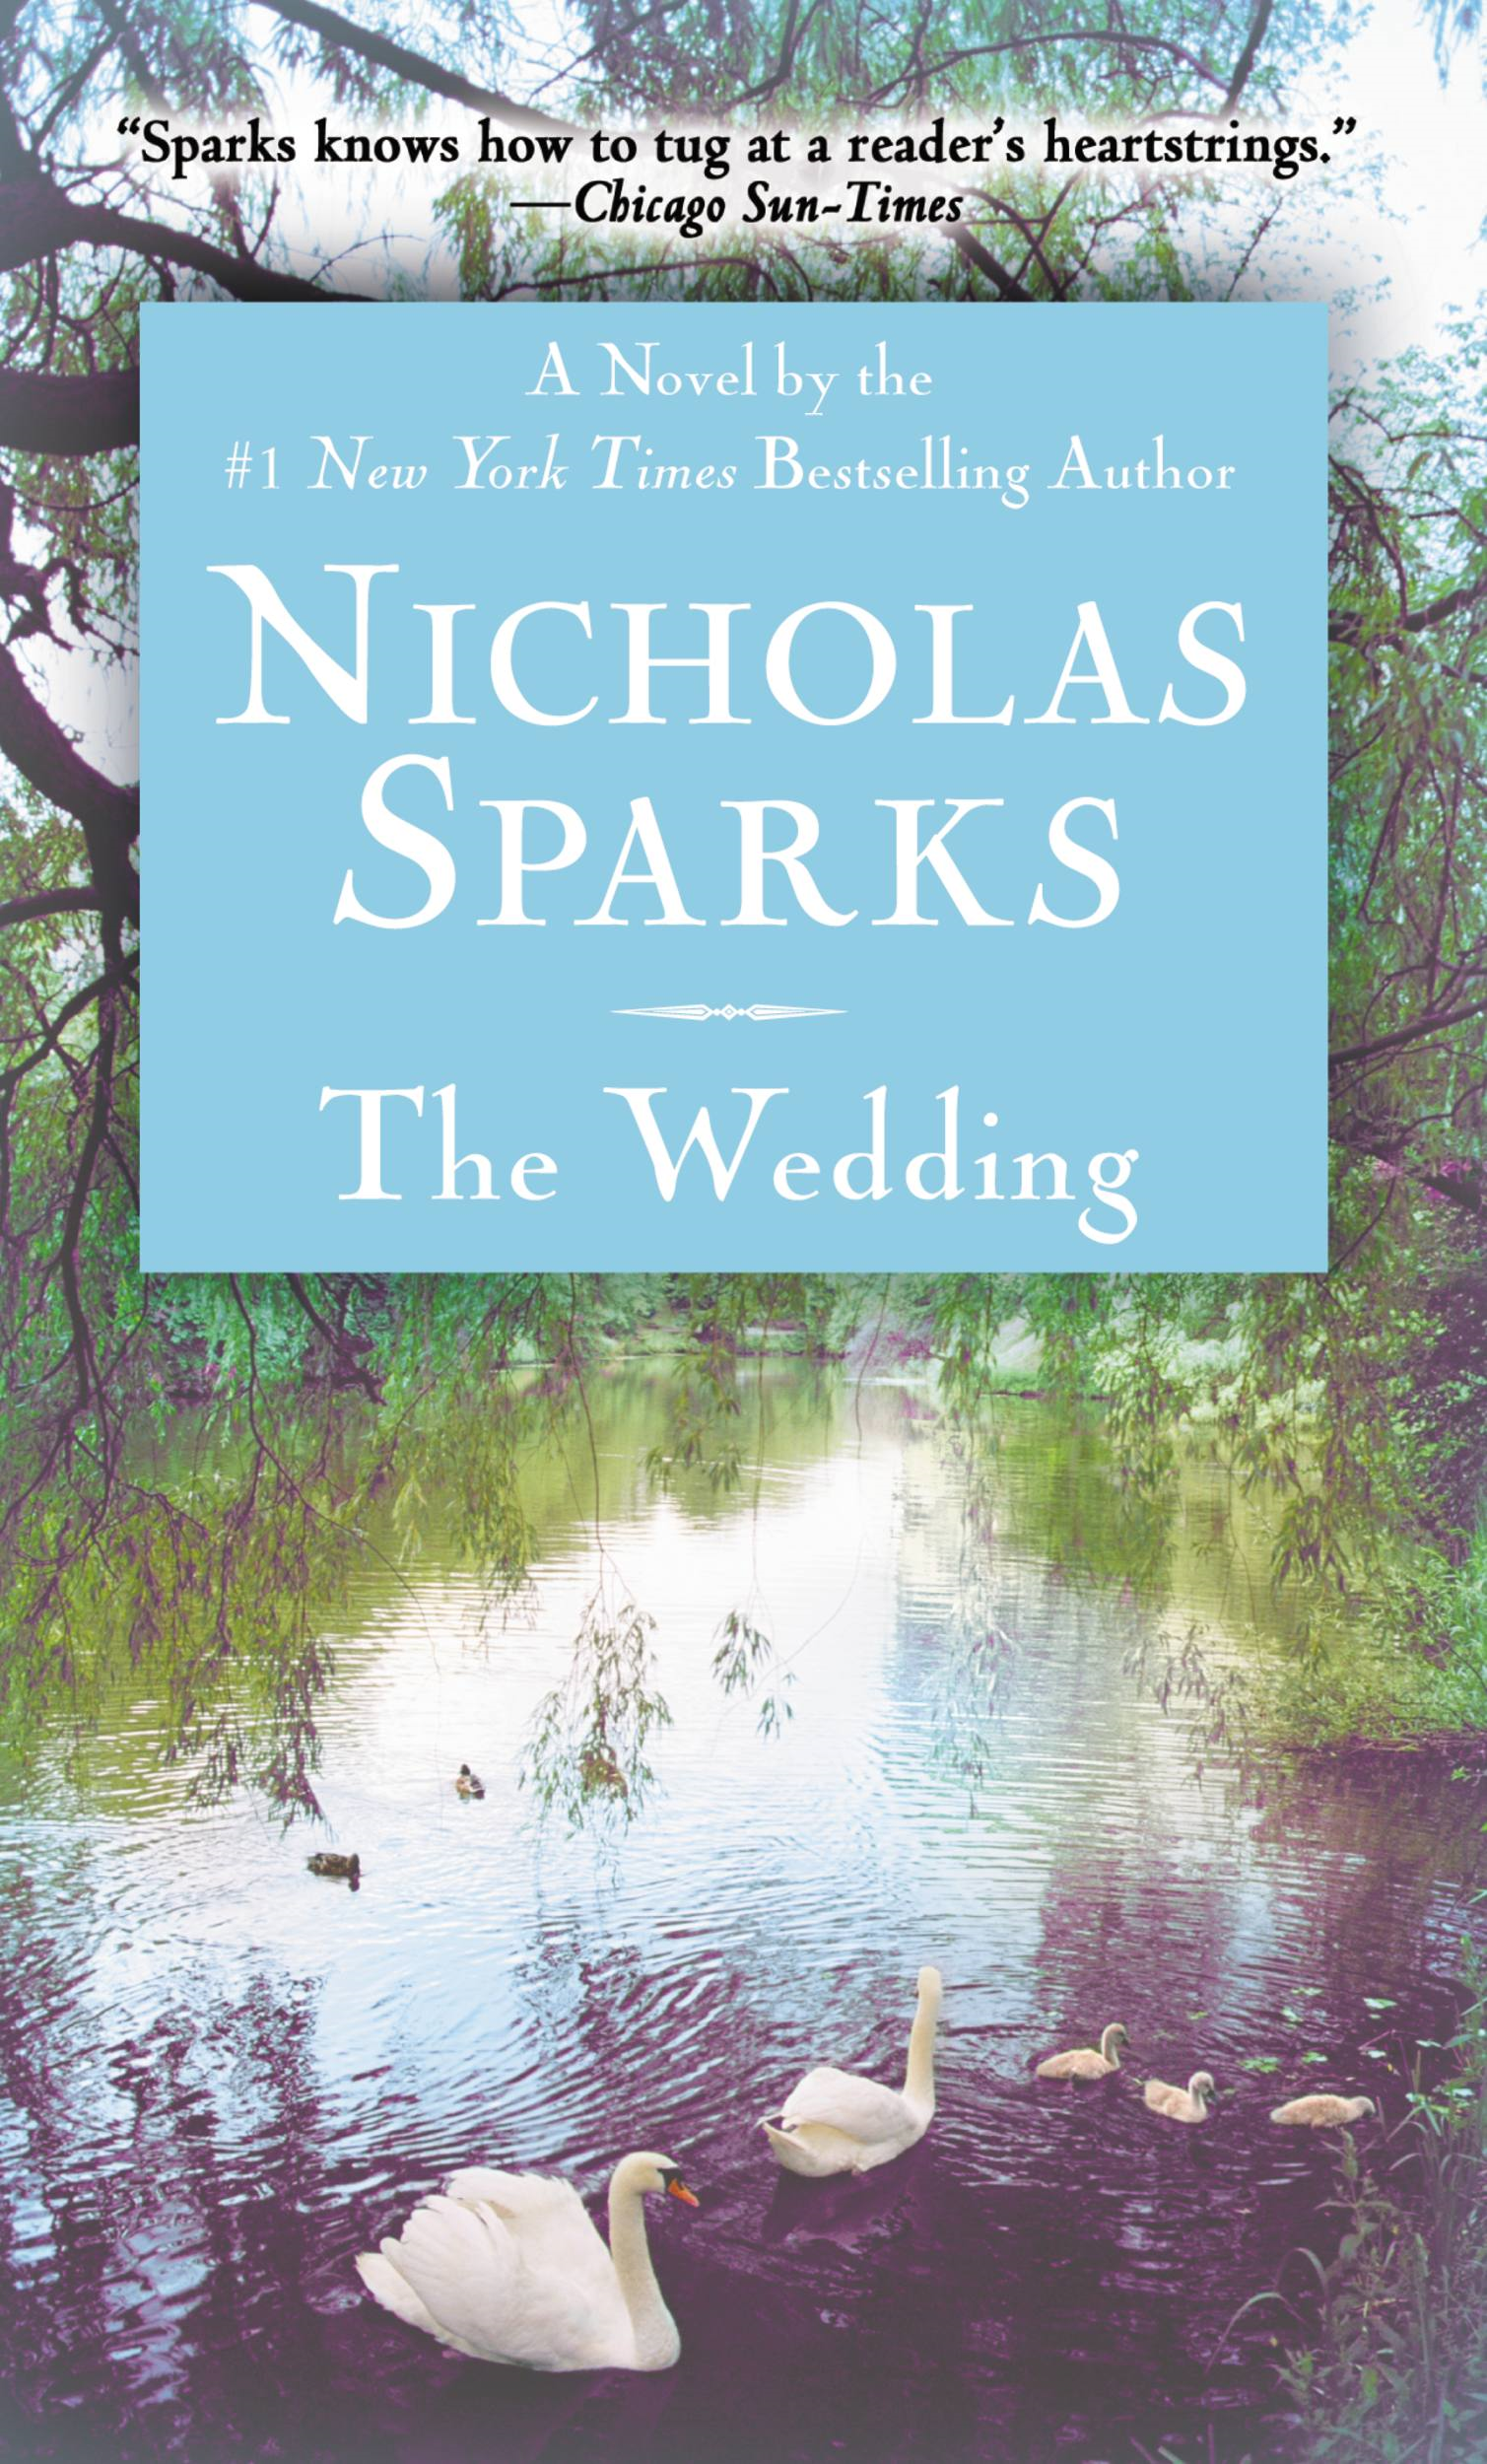 The Wedding By: Nicholas Sparks